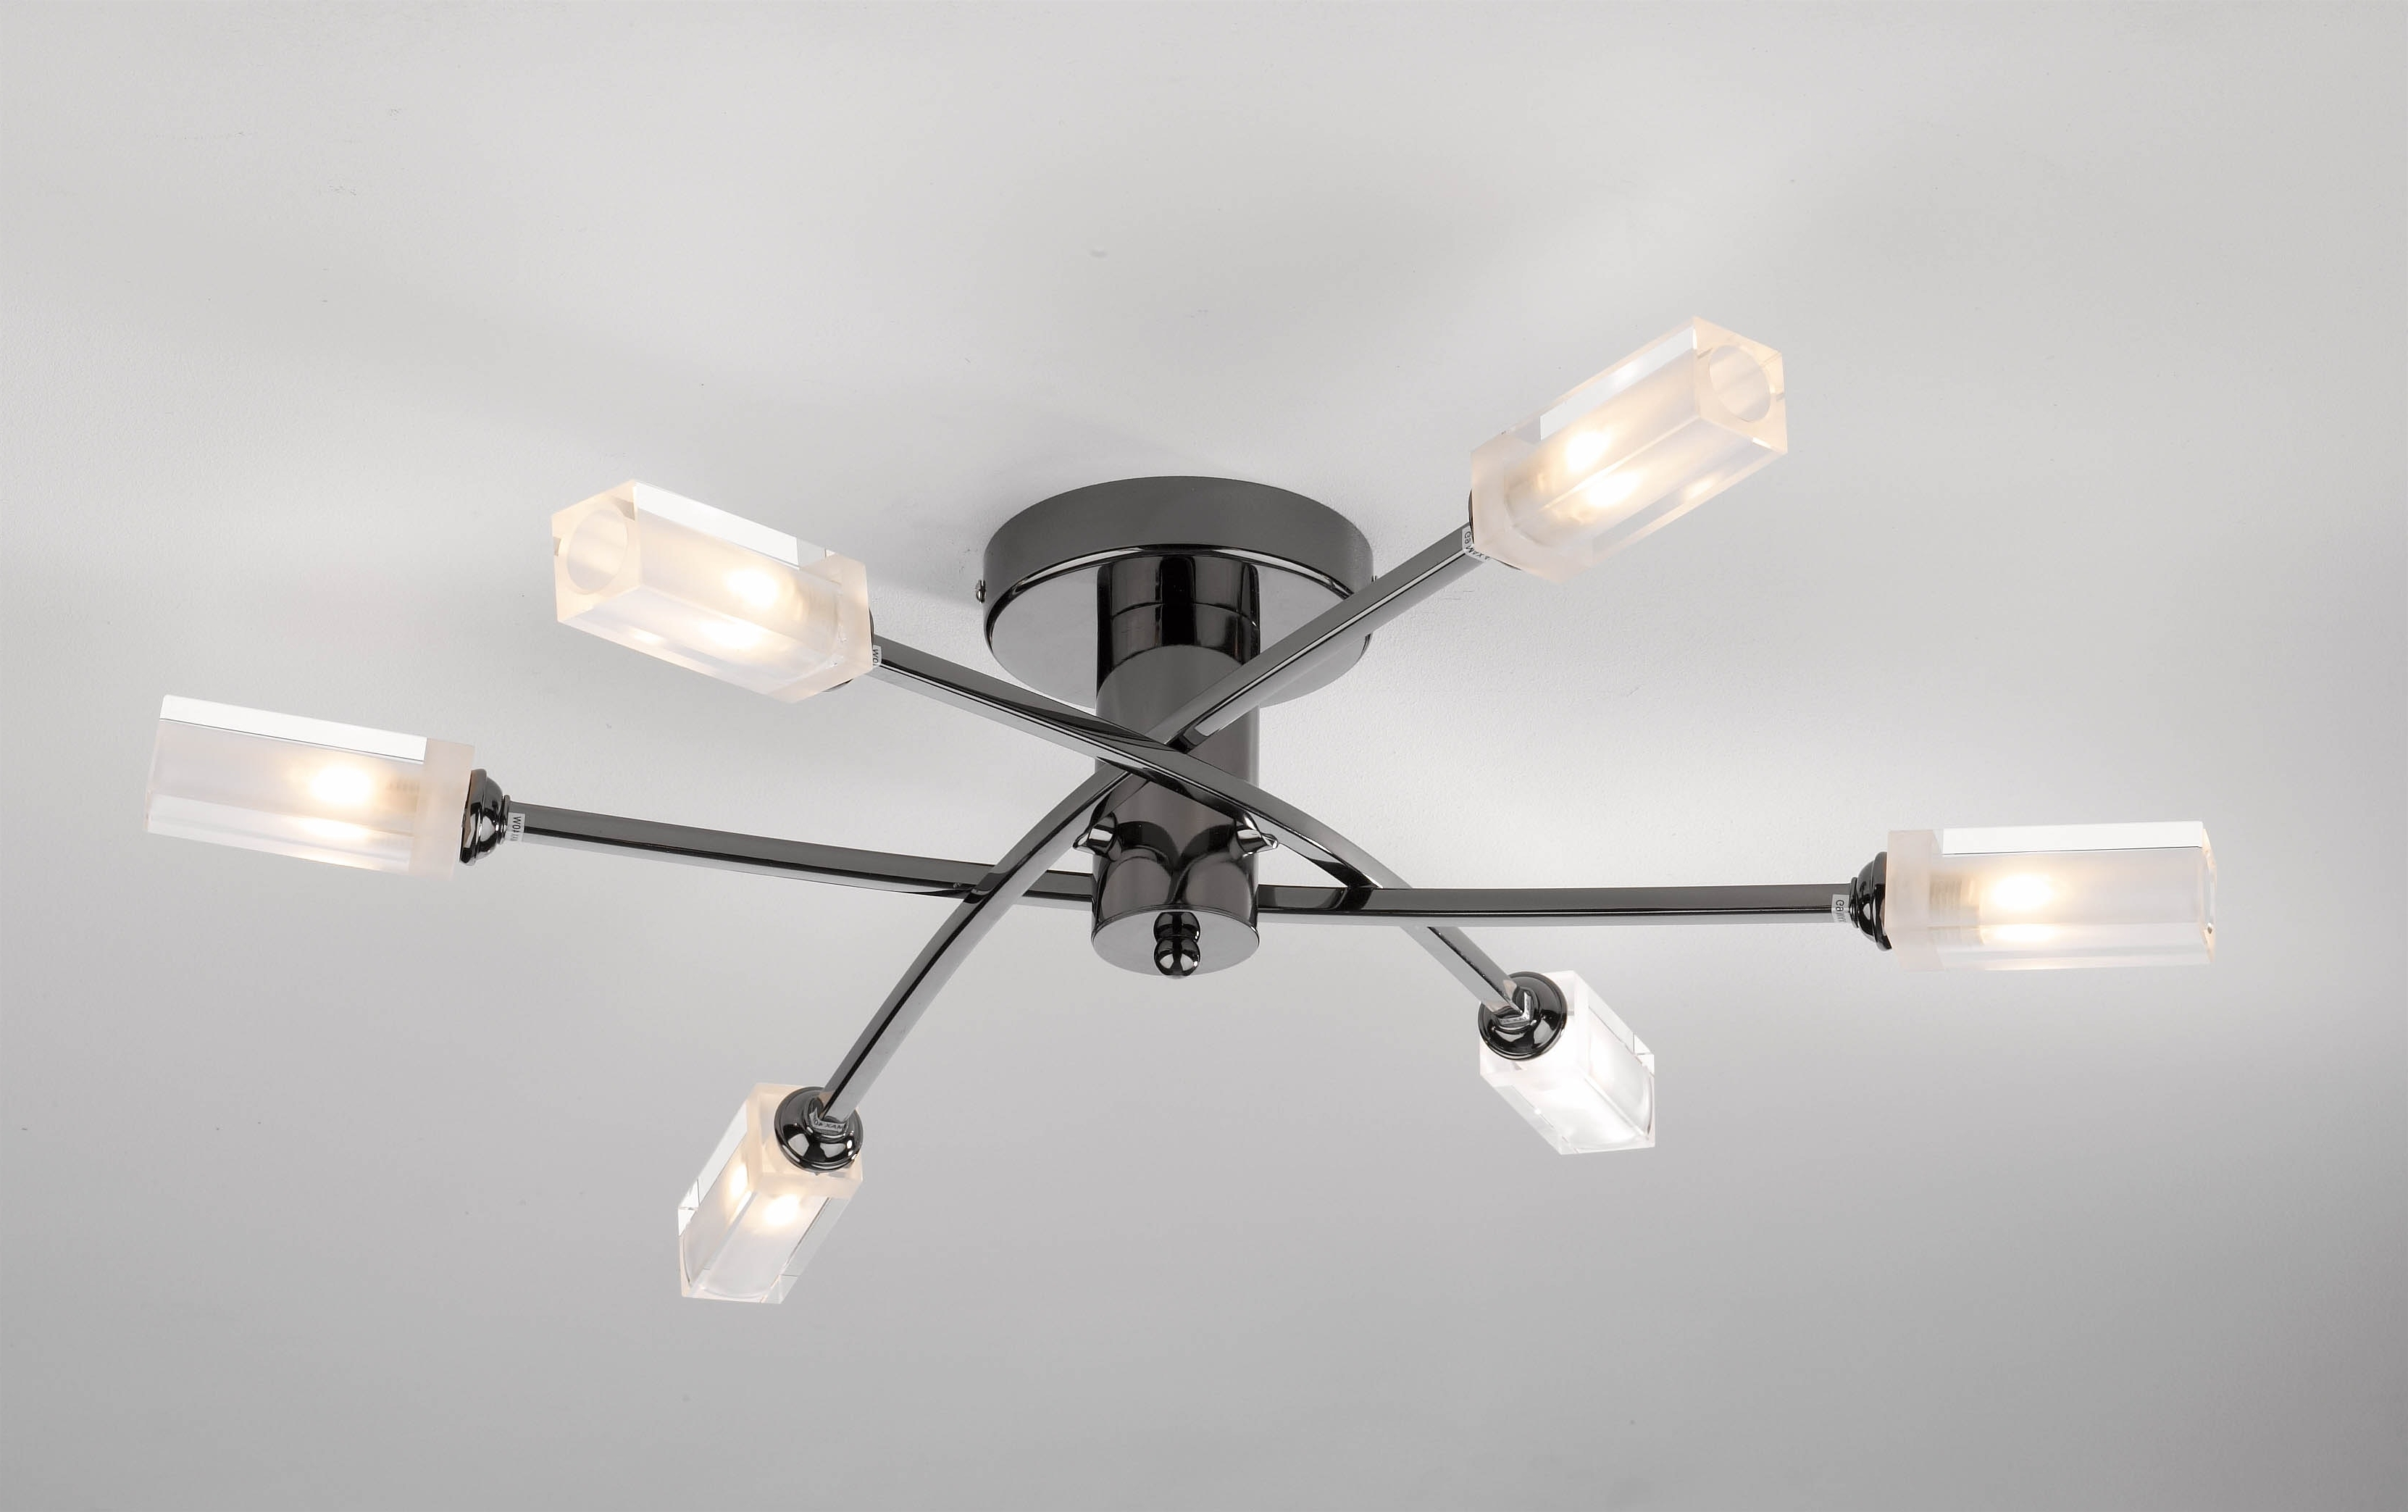 Current Outdoor Ceiling Lights At Homebase Inside Flush Ceiling Lights Homebase (View 5 of 20)